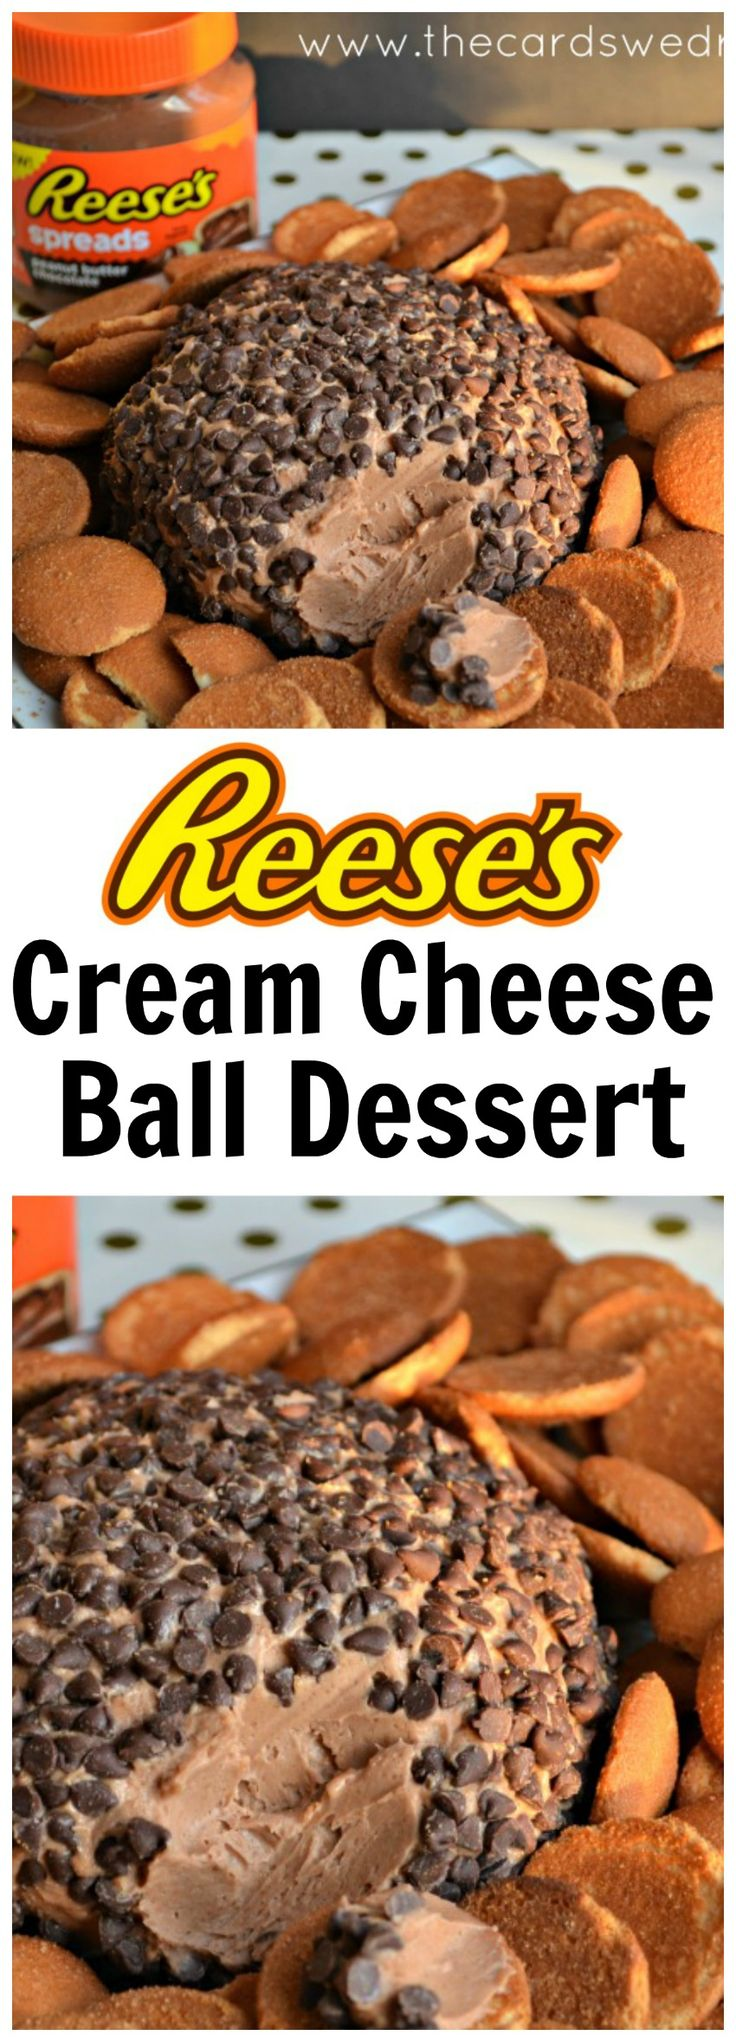 This Reese's Peanut Butter Cream Cheese Ball makes an awesome party dessert or appetizer! And it's super easy to make!